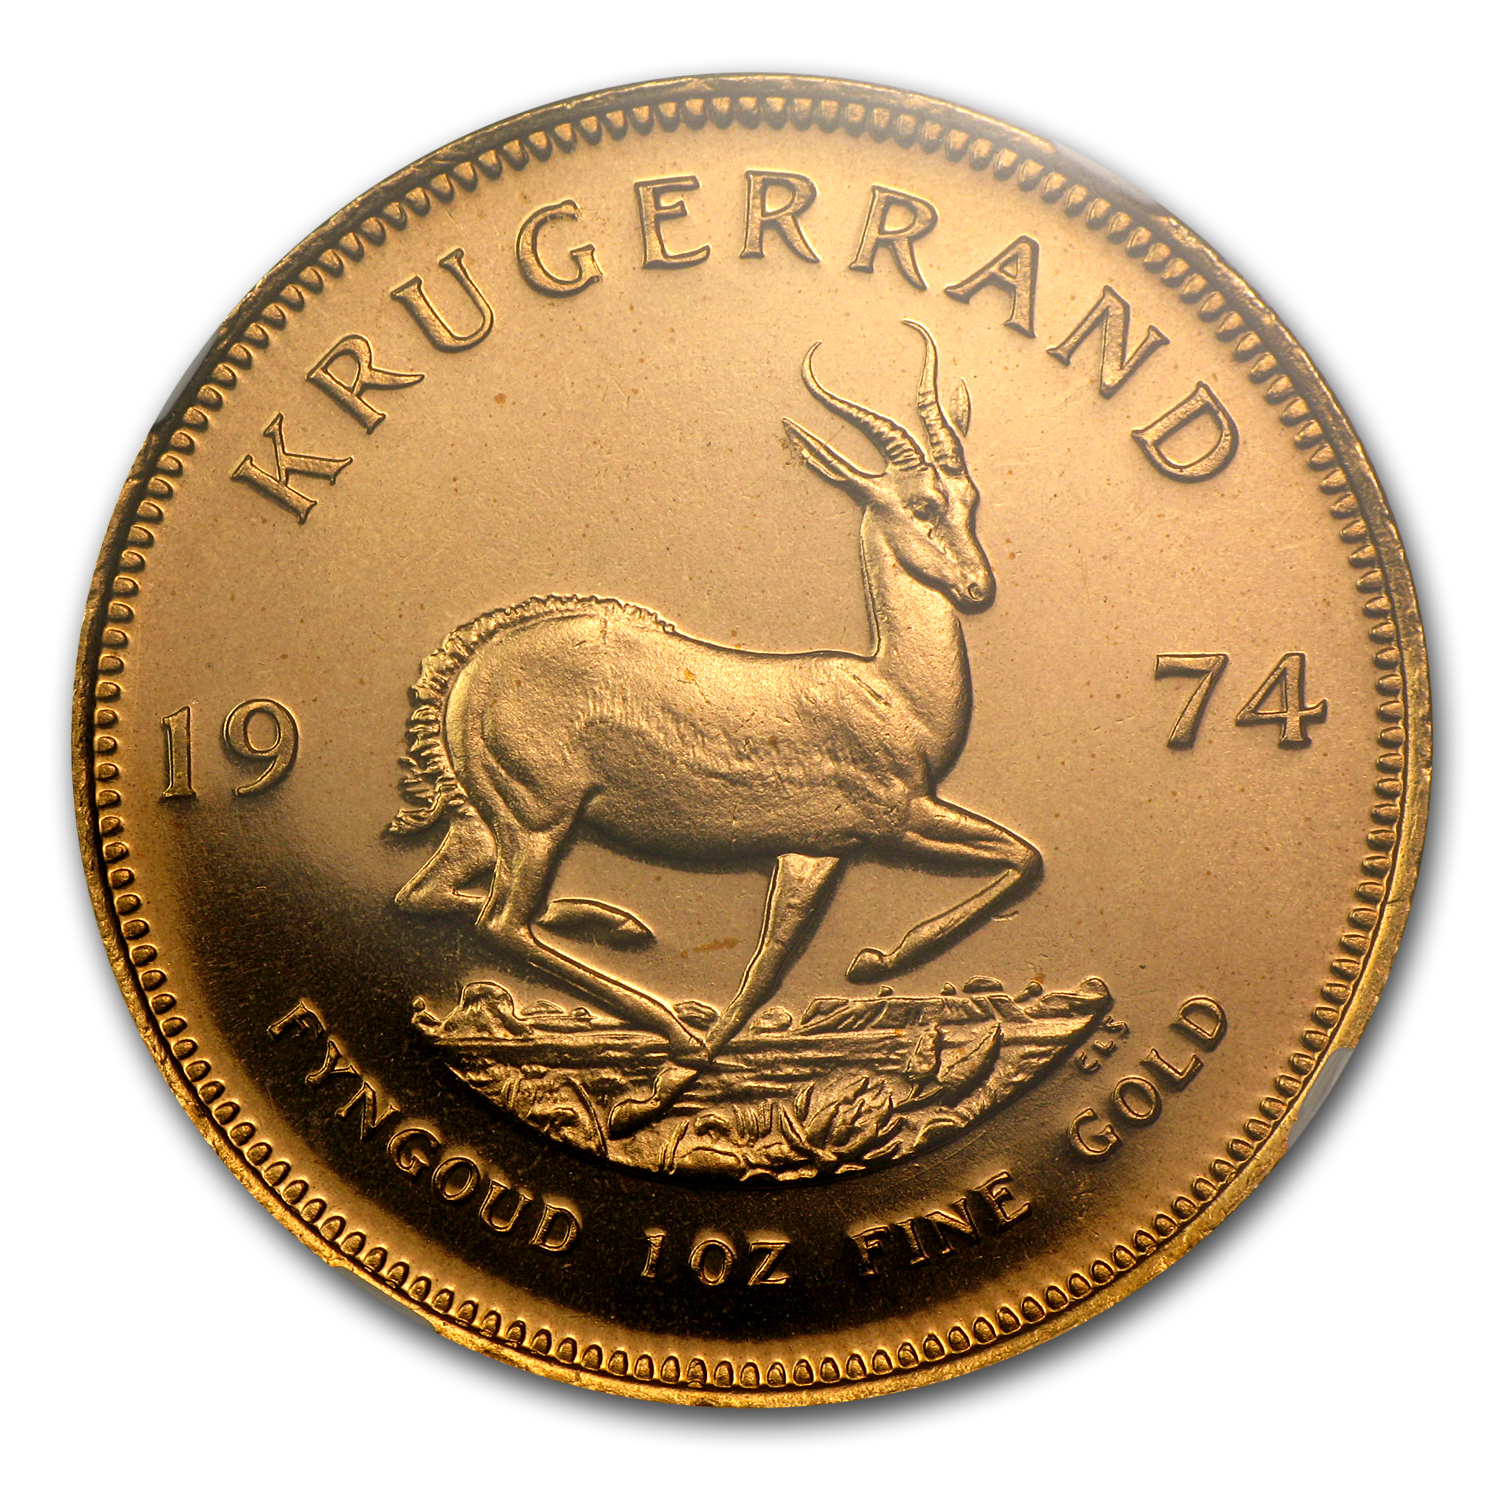 1974 South Africa 1 oz Gold Krugerrand PF-68 NGC